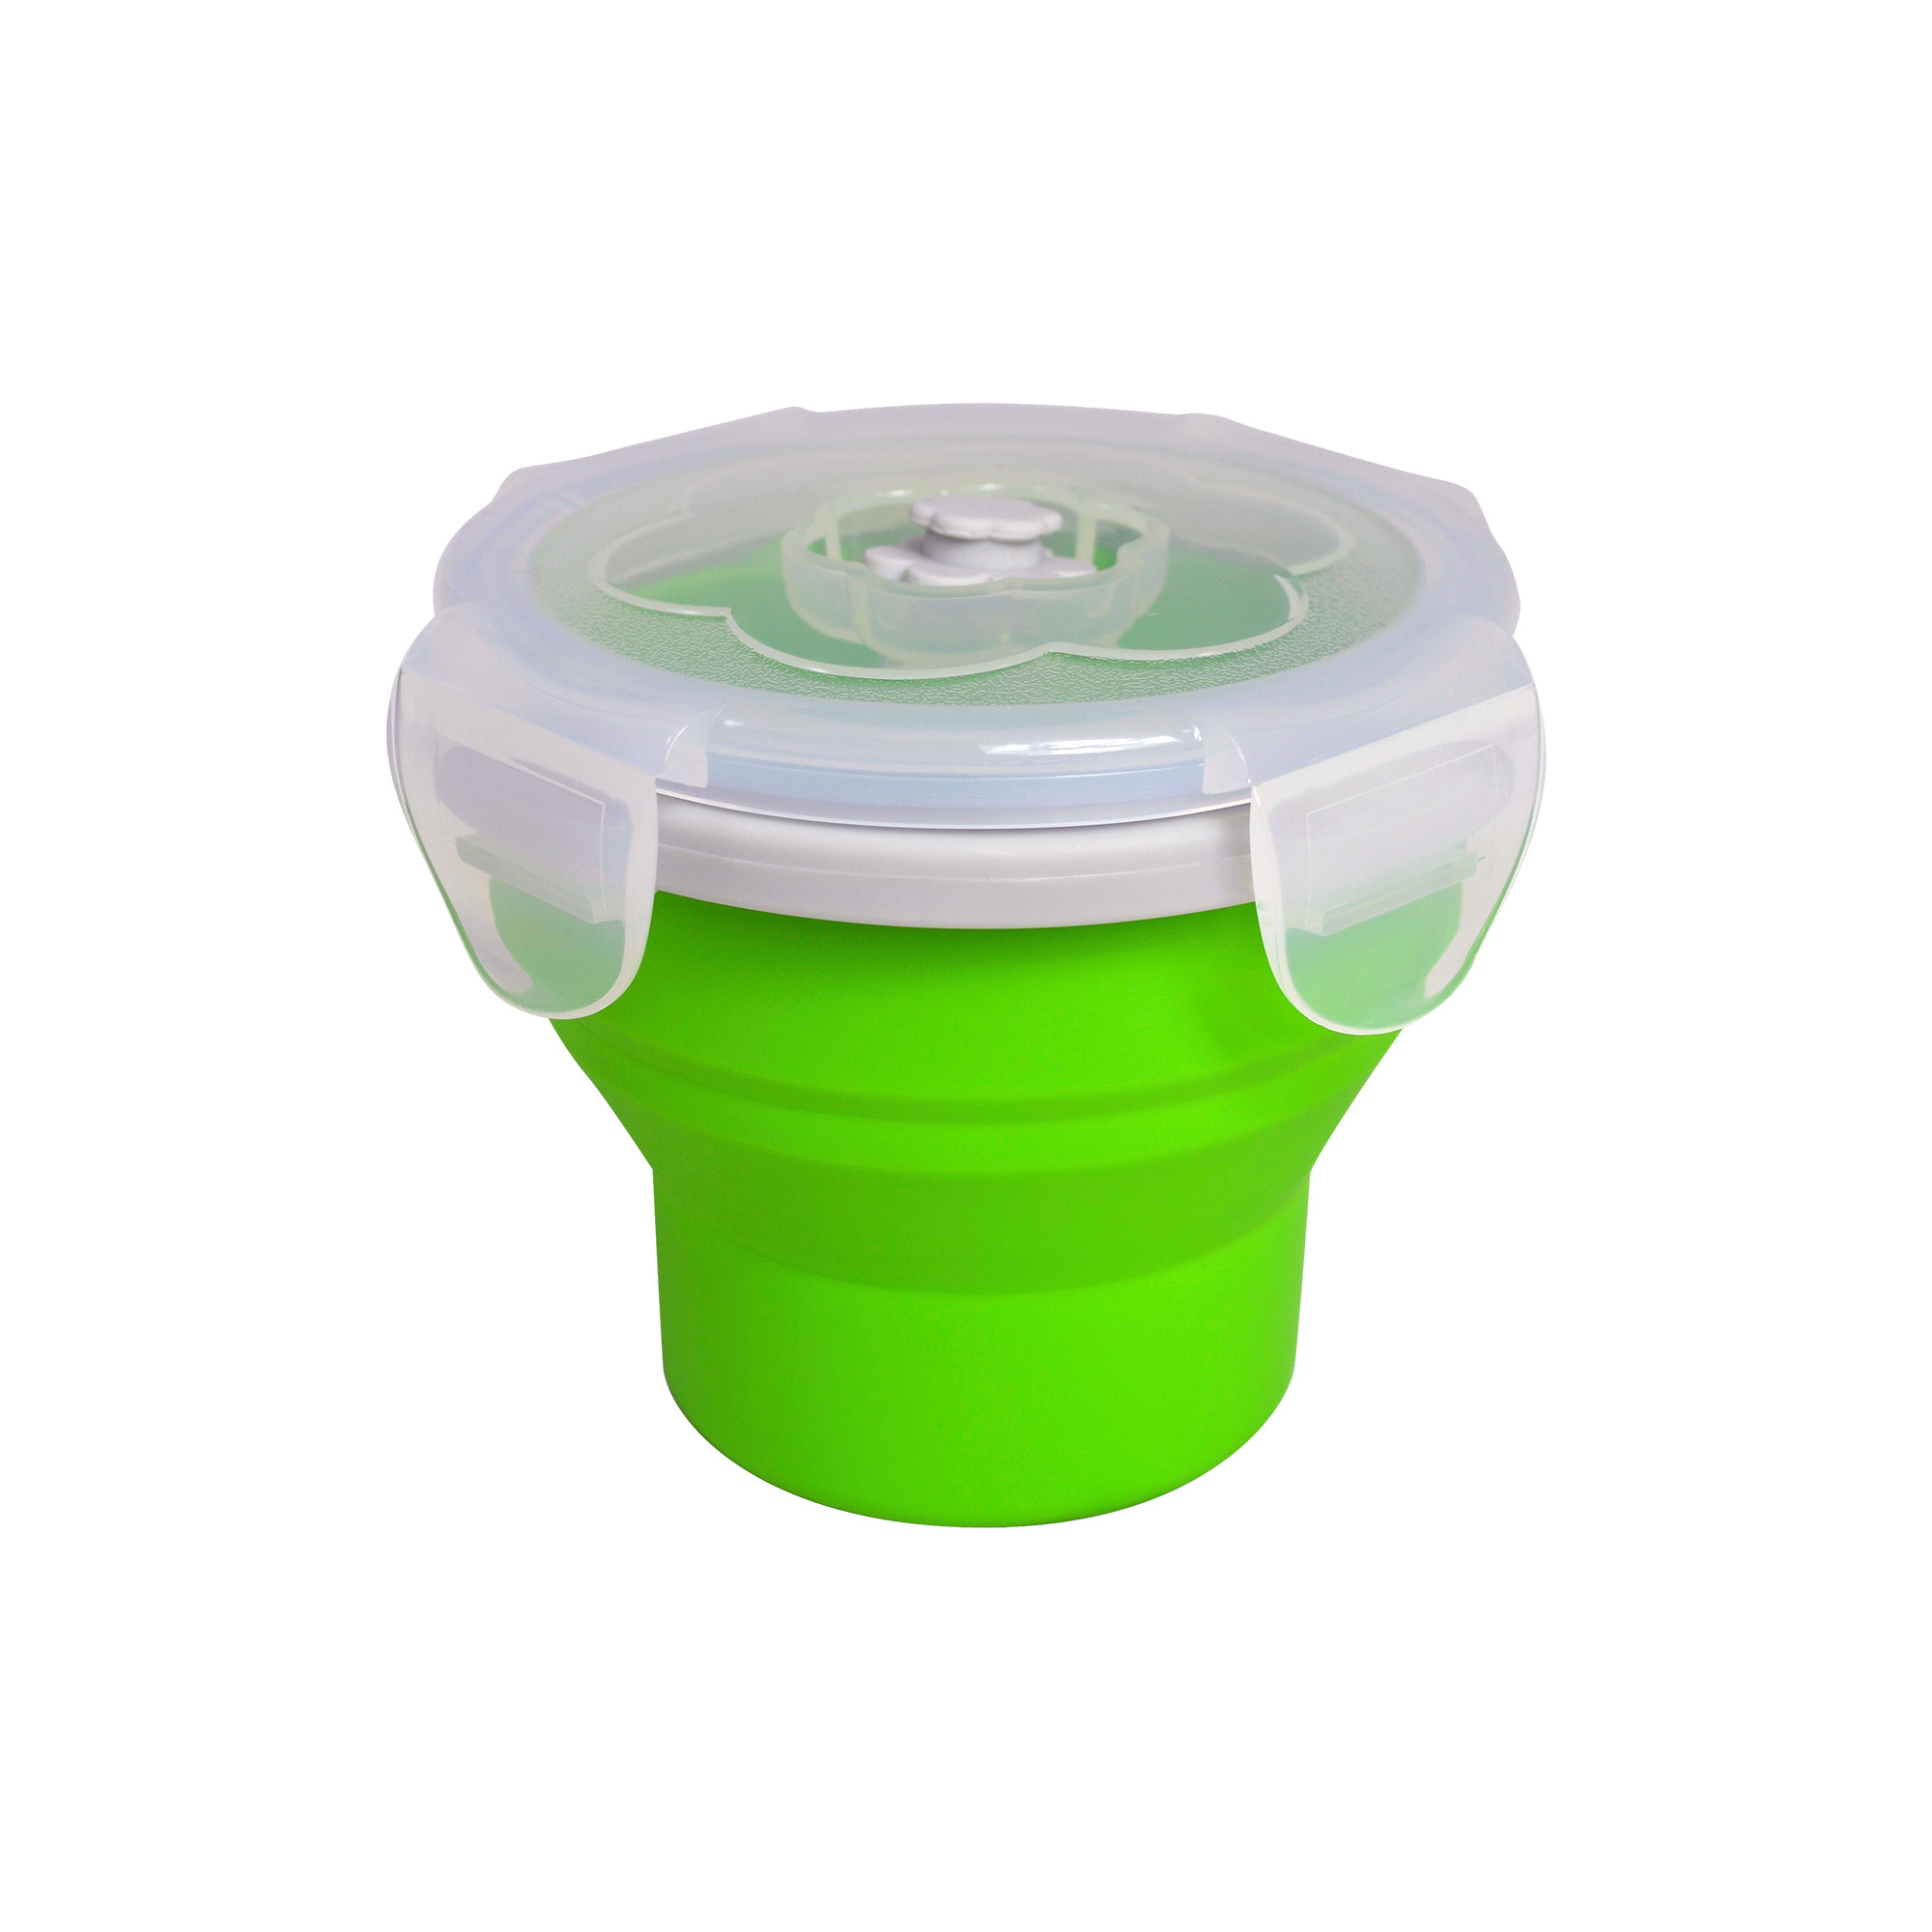 EcoVessel Snacker Collapsible Silicone Snack Cup, Green